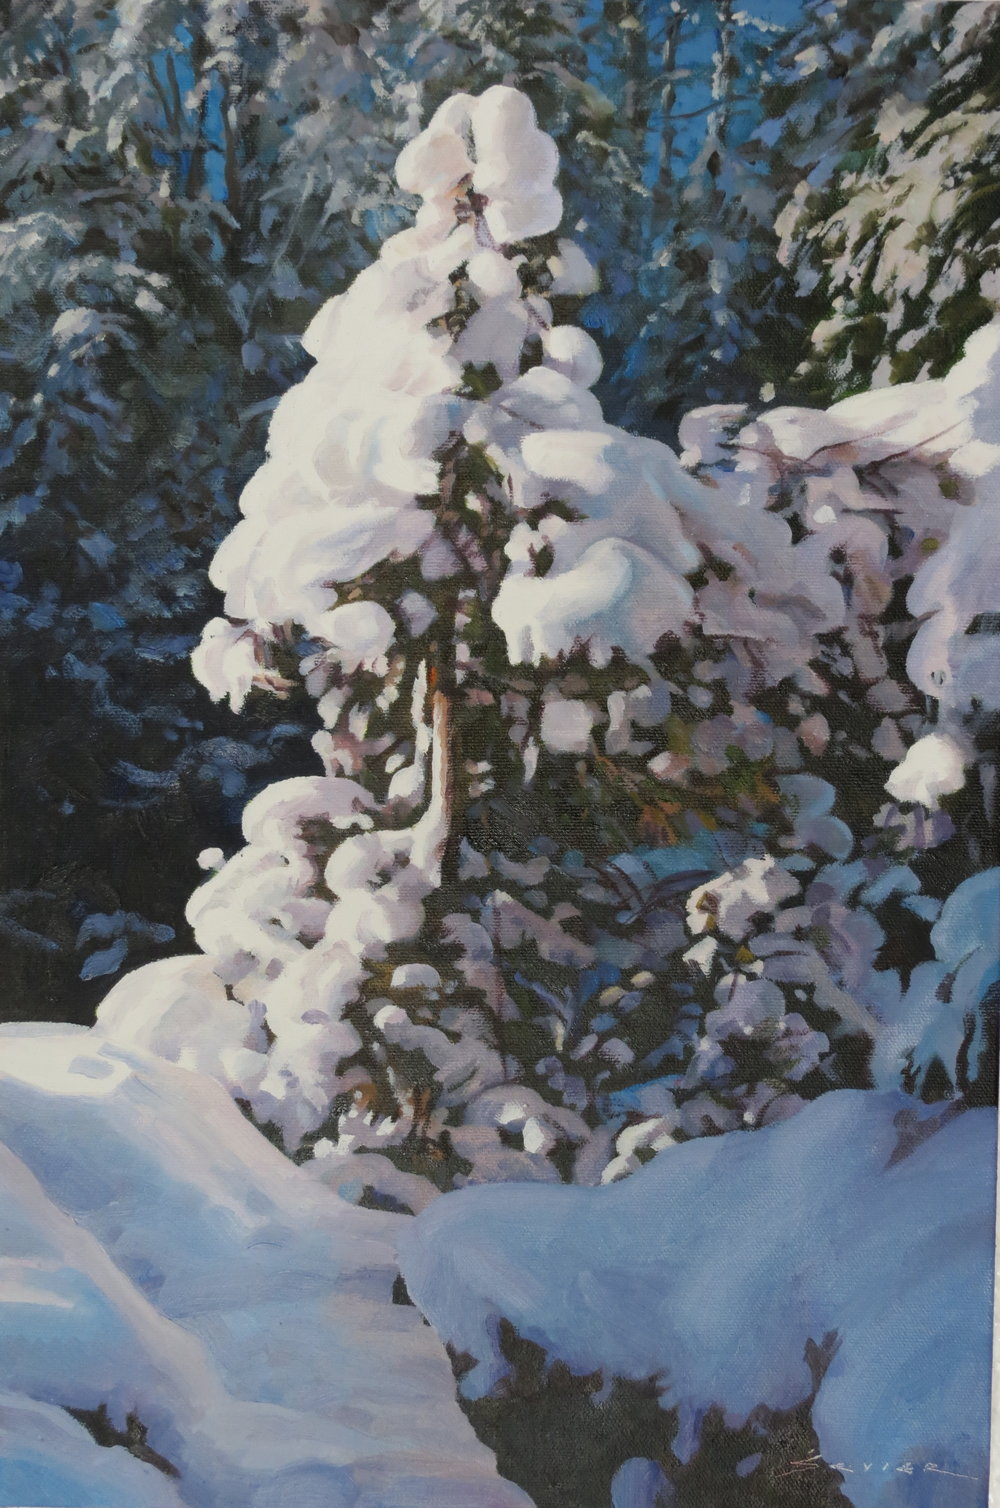 New Snow, 18 x 12, oil